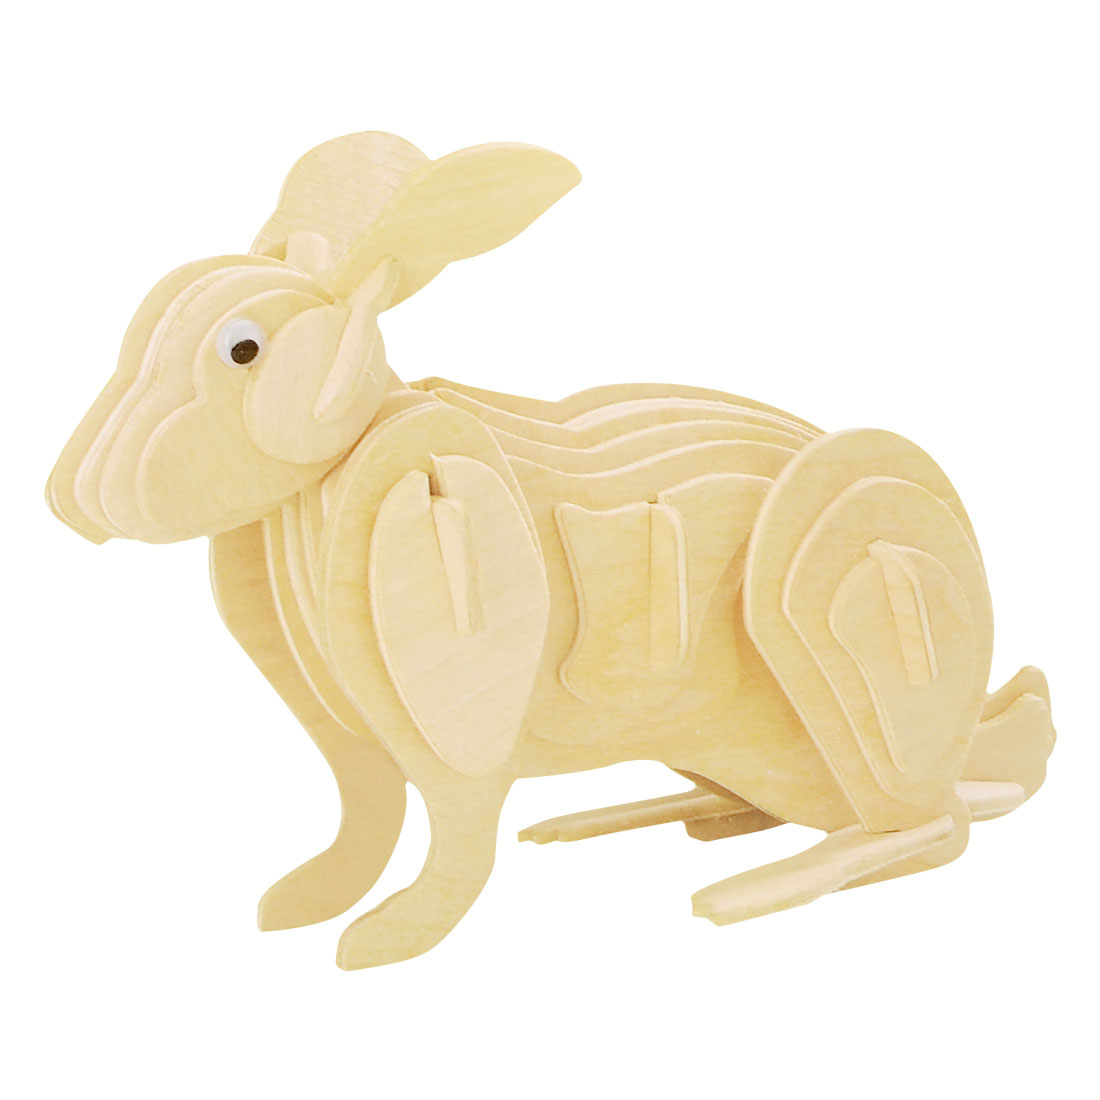 Children DIY Wooden Rabbit Model 3D Puzzle Toy Gift Woodcraft Construction Kit